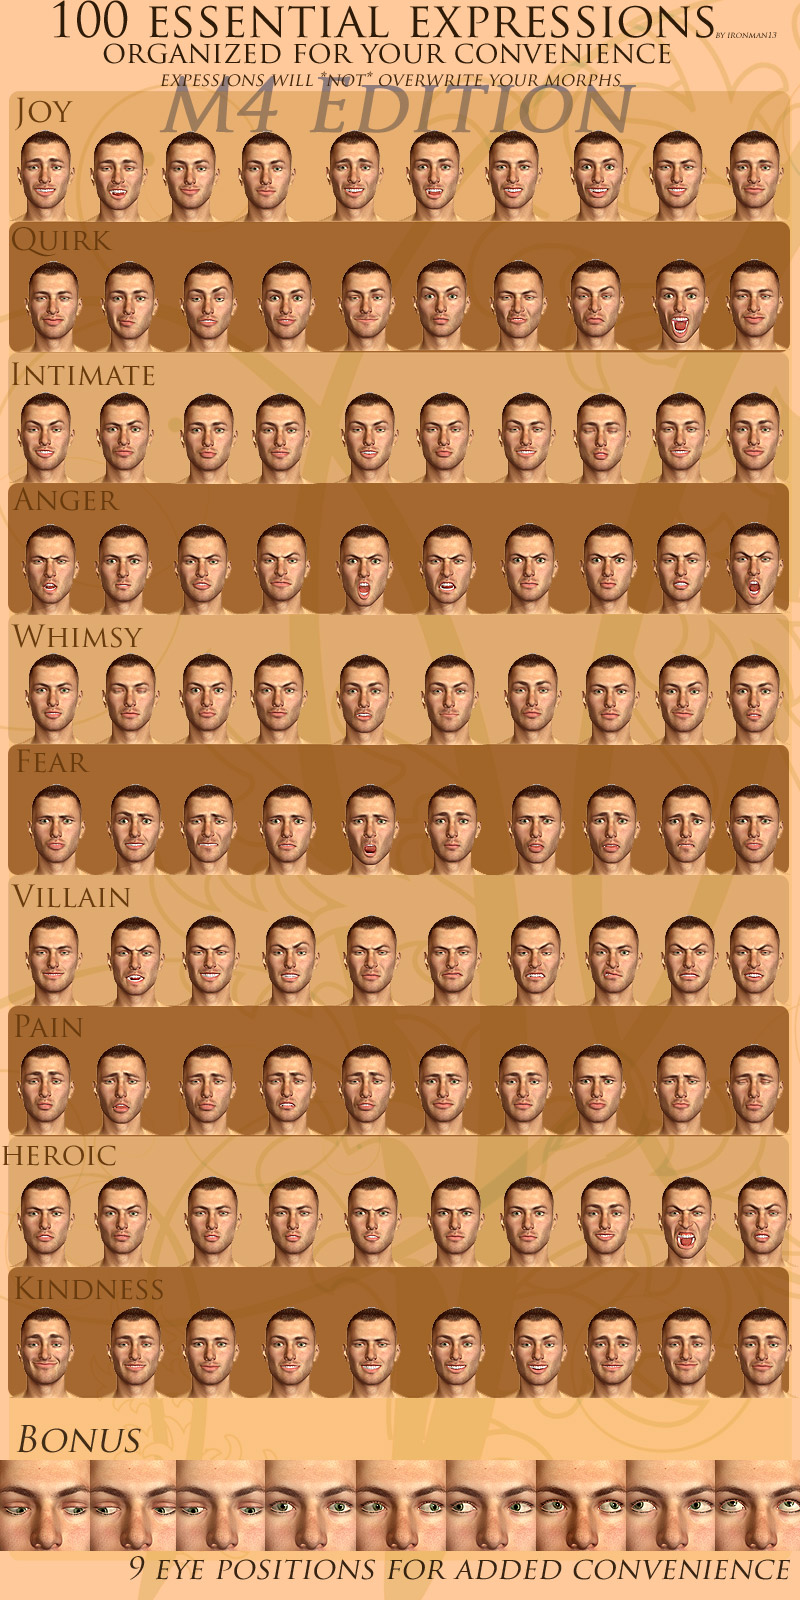 100 Essential Expressions by Ironman13: M4 Edition